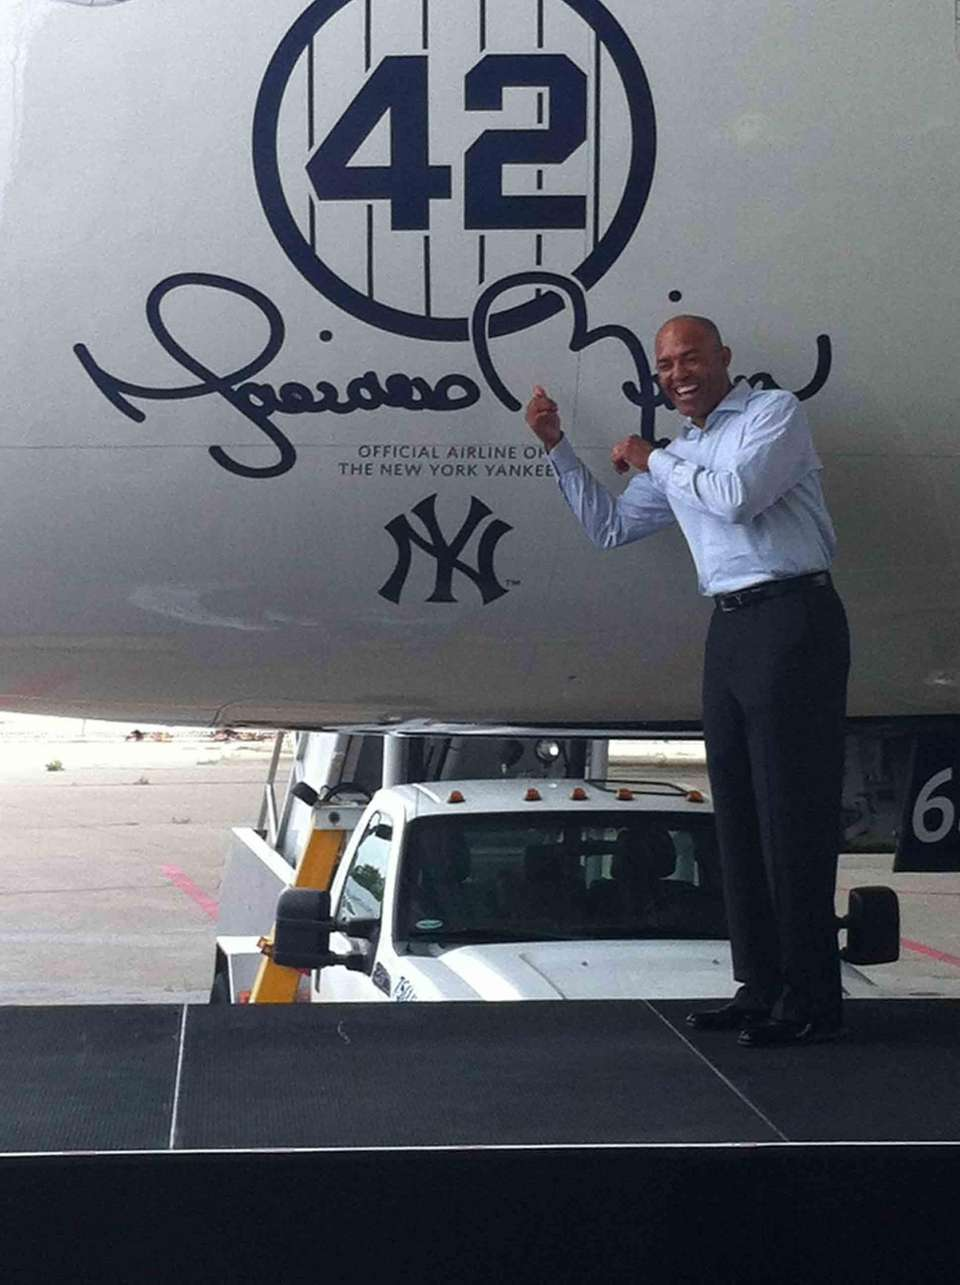 DELTA AIR LINES Rivera was honored by Delta